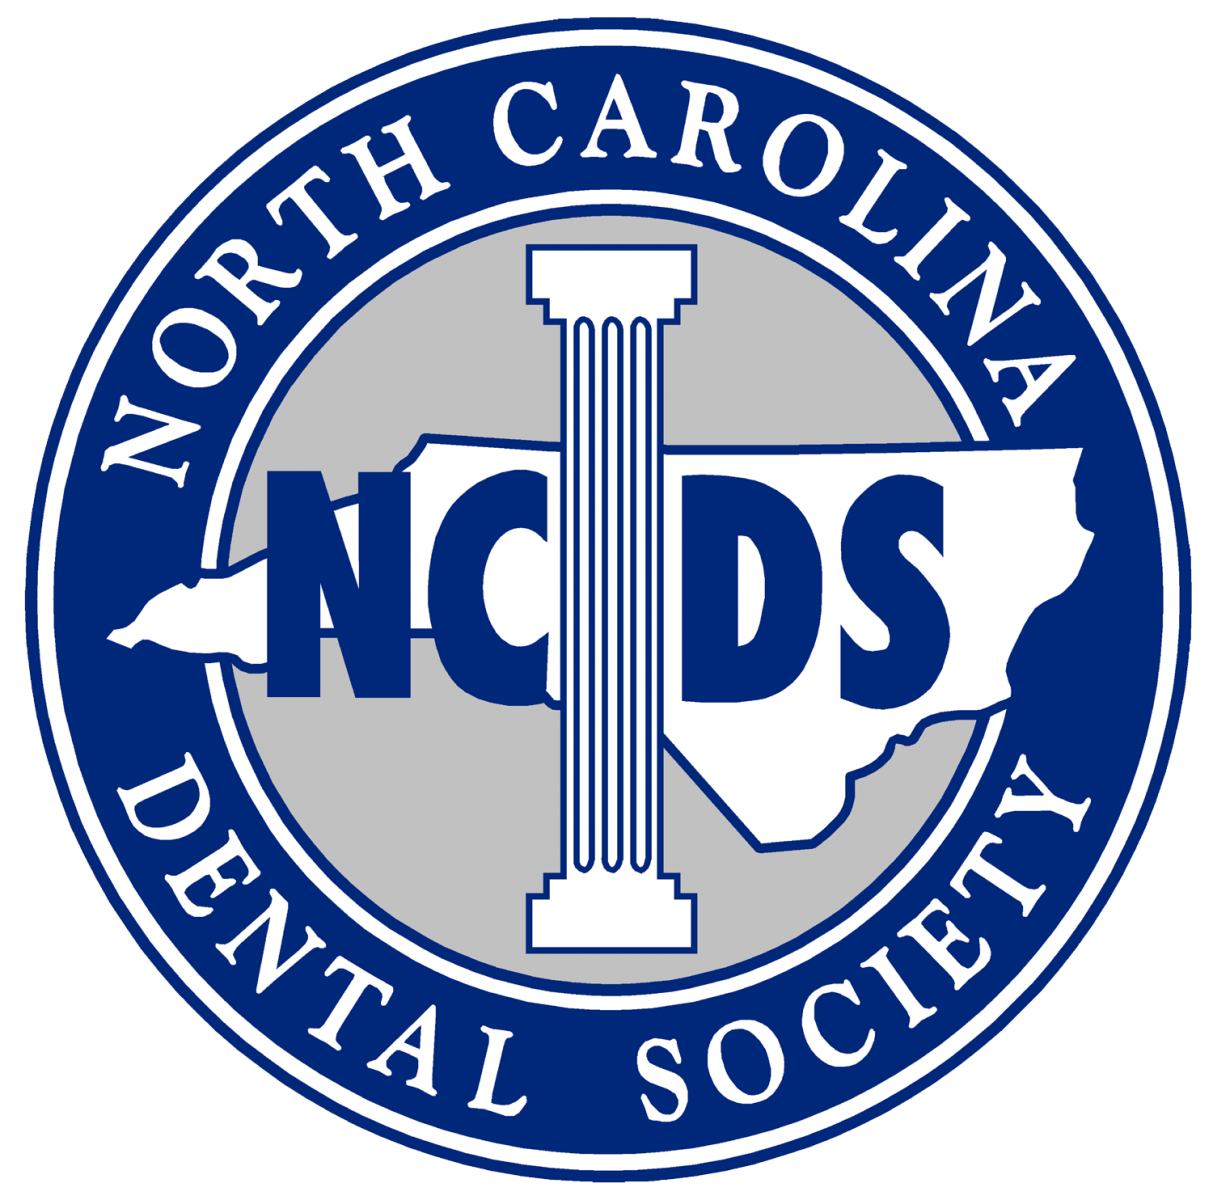 https://friendlydentalgroup.com/wp-content/uploads/2017/02/ncdentalsocietycharlotte.png